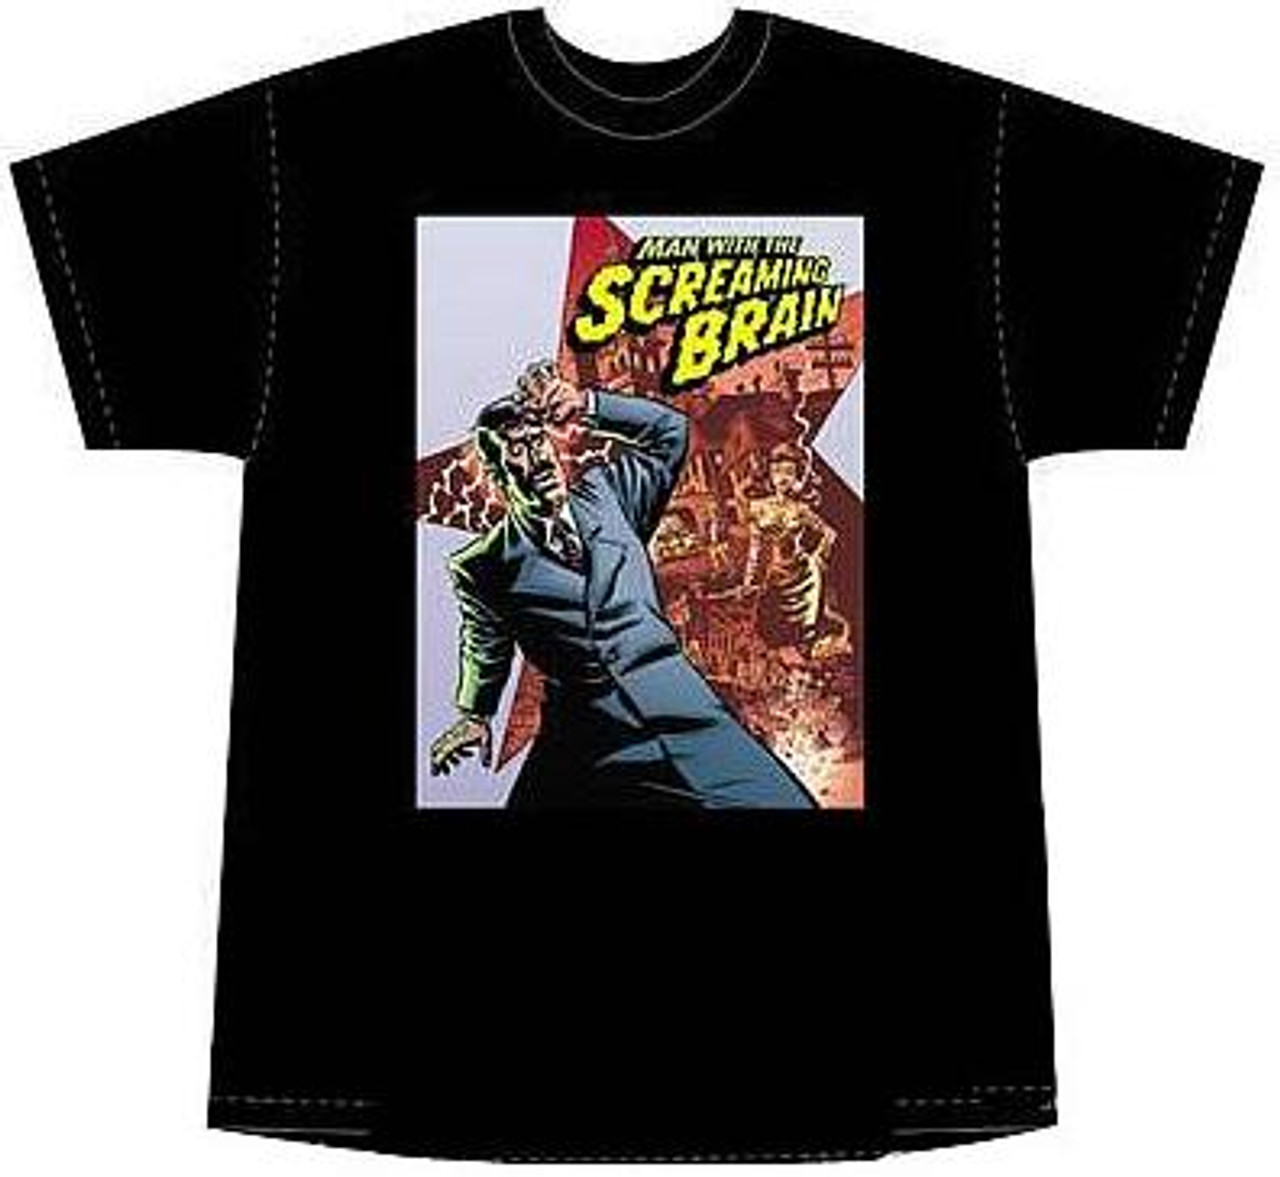 The Man With the Screaming Brain T-Shirt [X-Large]